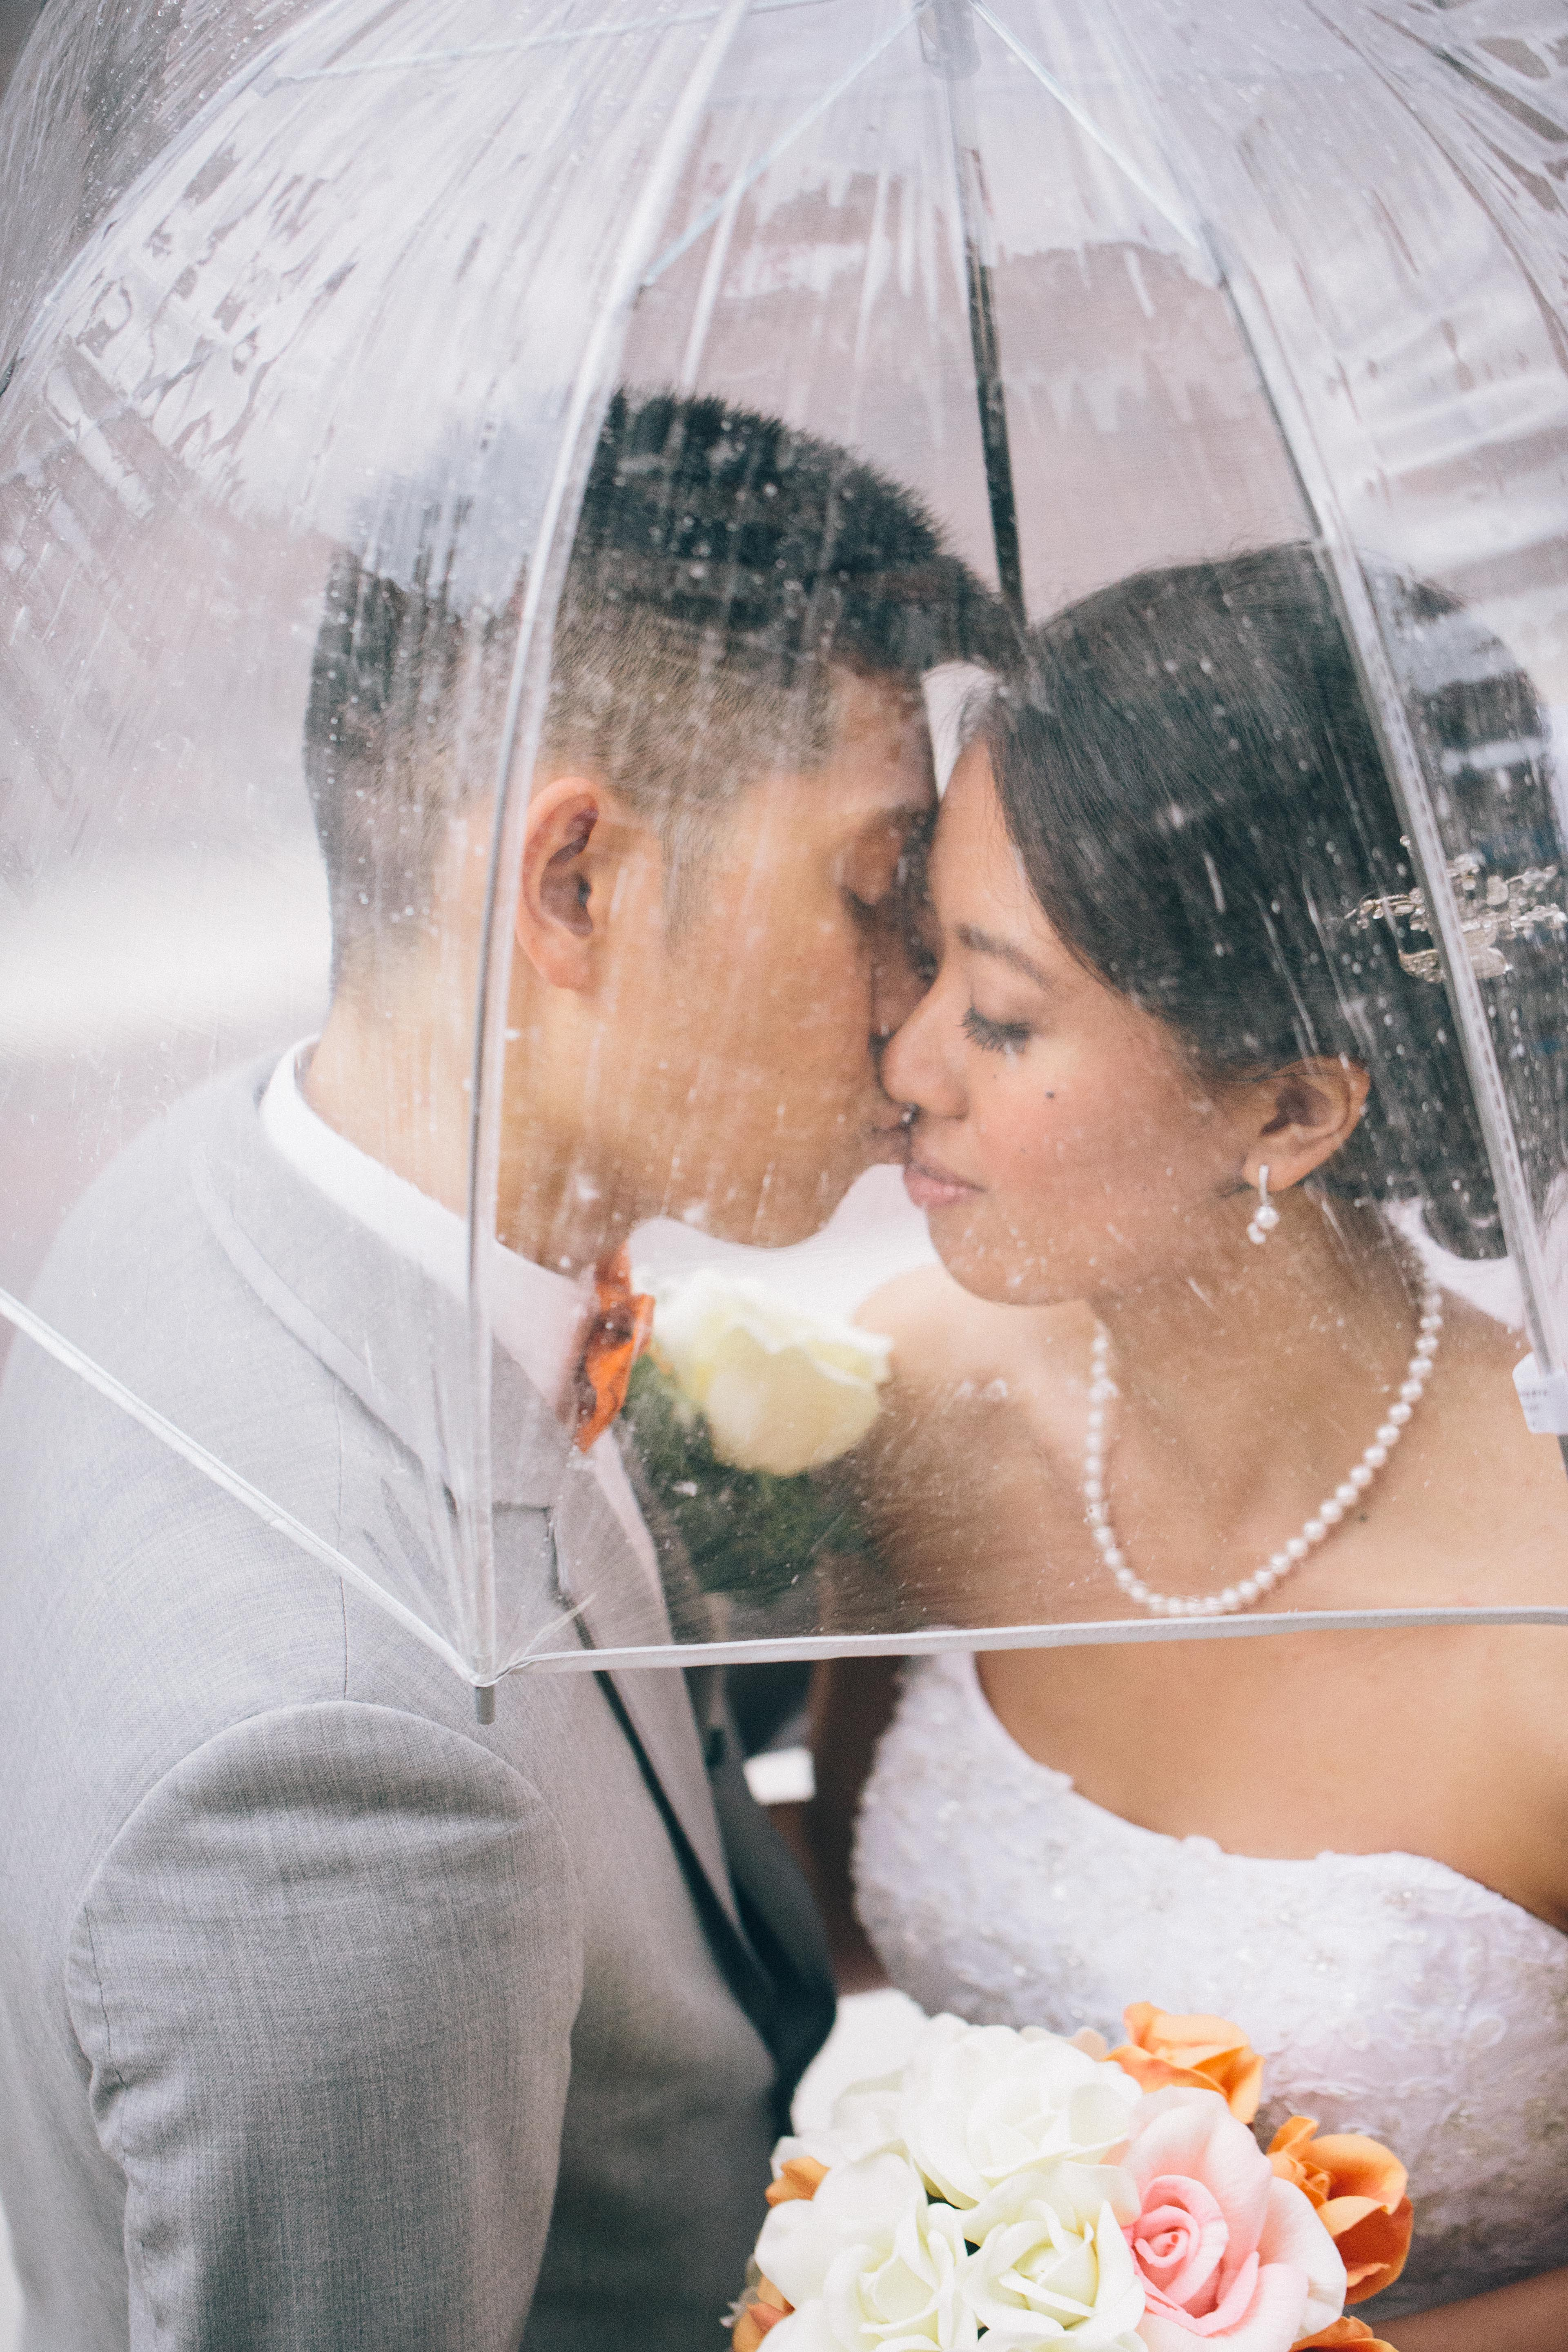 Chinese bride and groom share a kiss under a clear umbrella during their summer wedding in Toronto